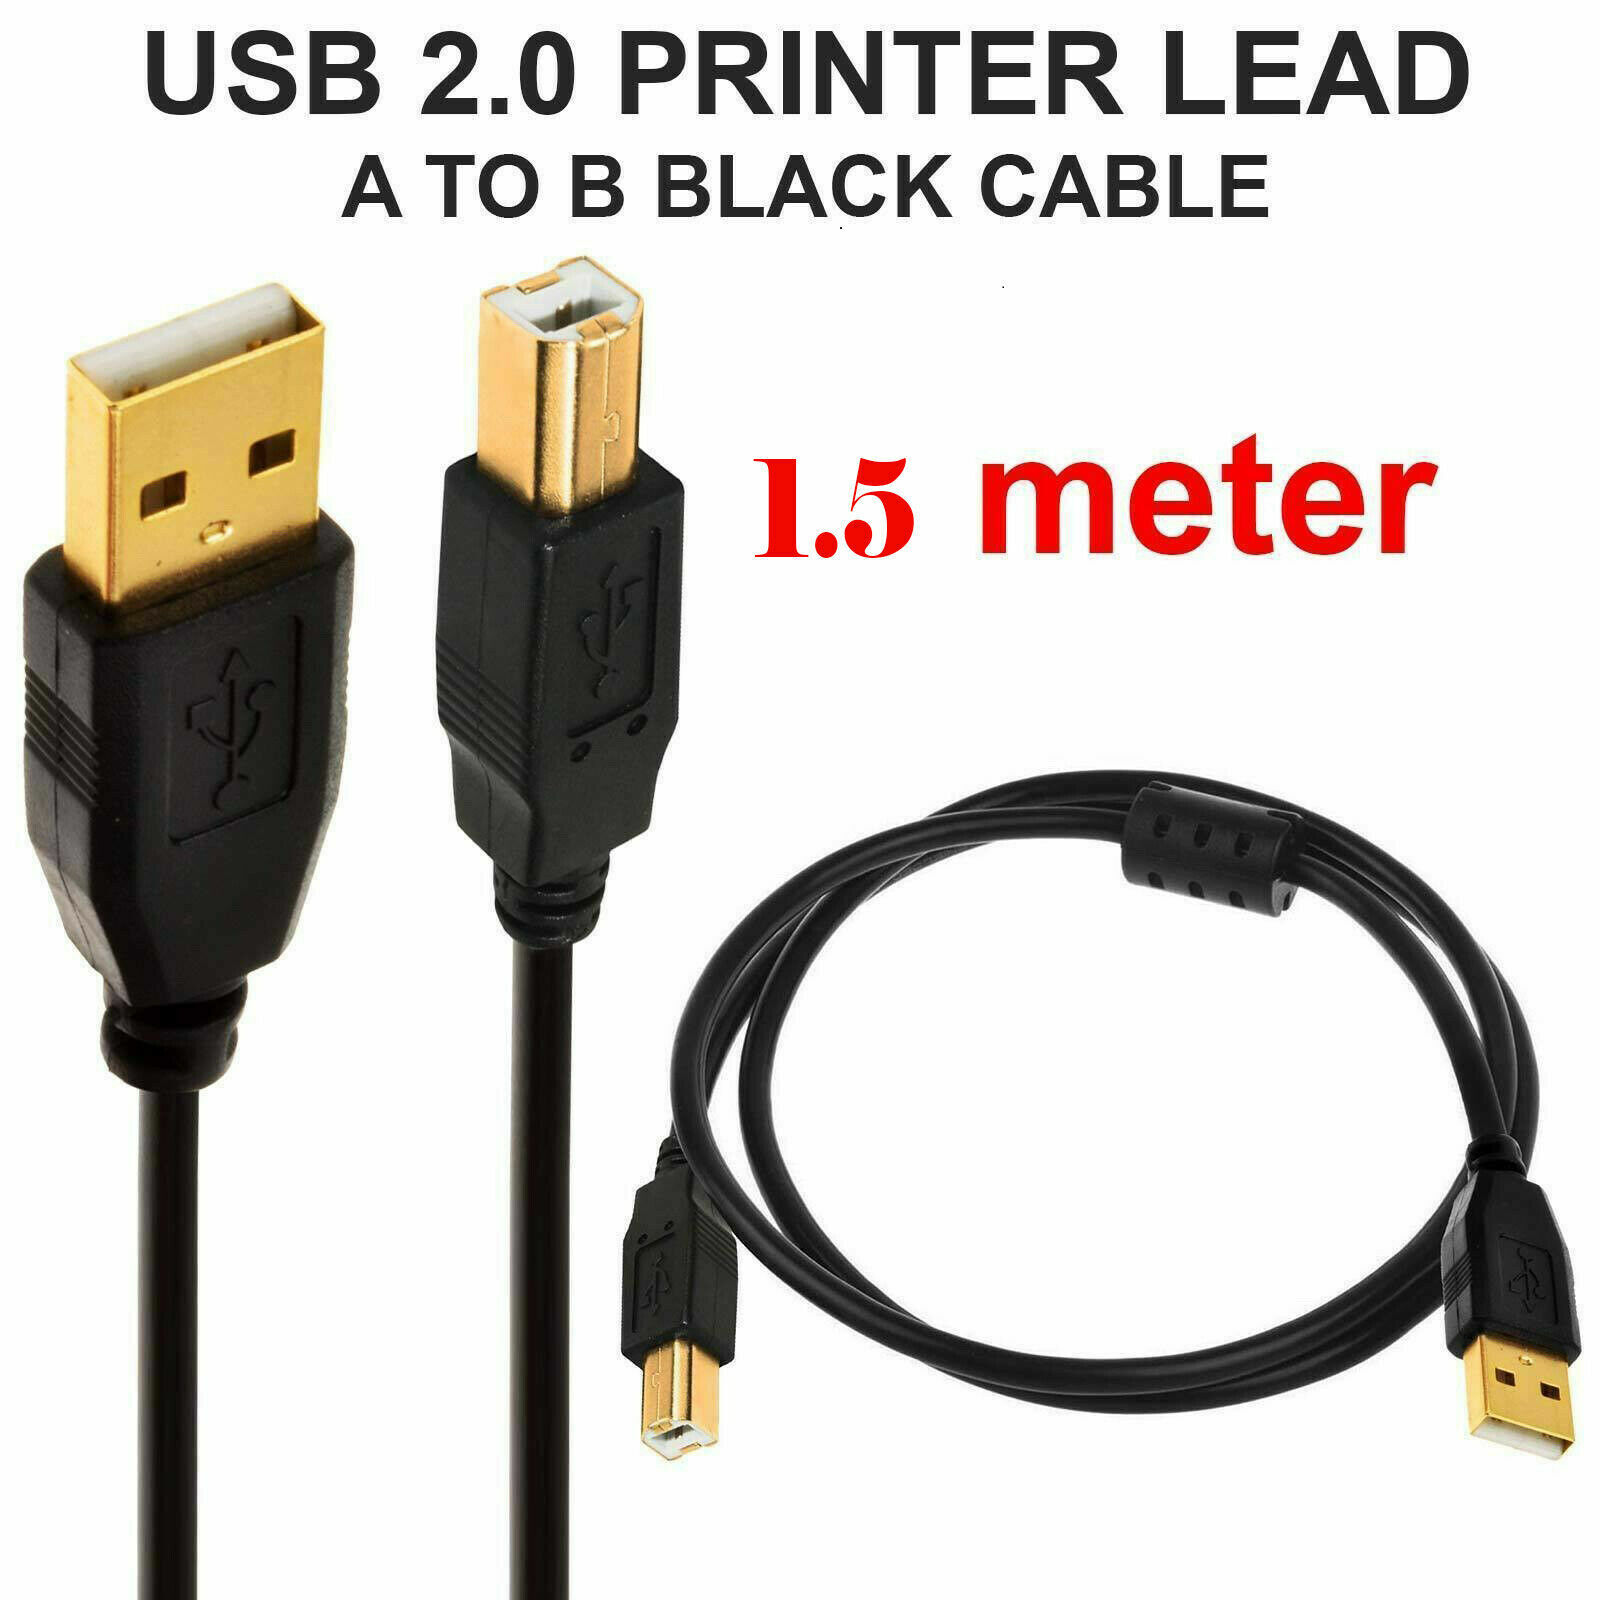 1.5M USB Cable Printer Lead Type A to B Male High Speed 2.0 PLATED CONNECTO